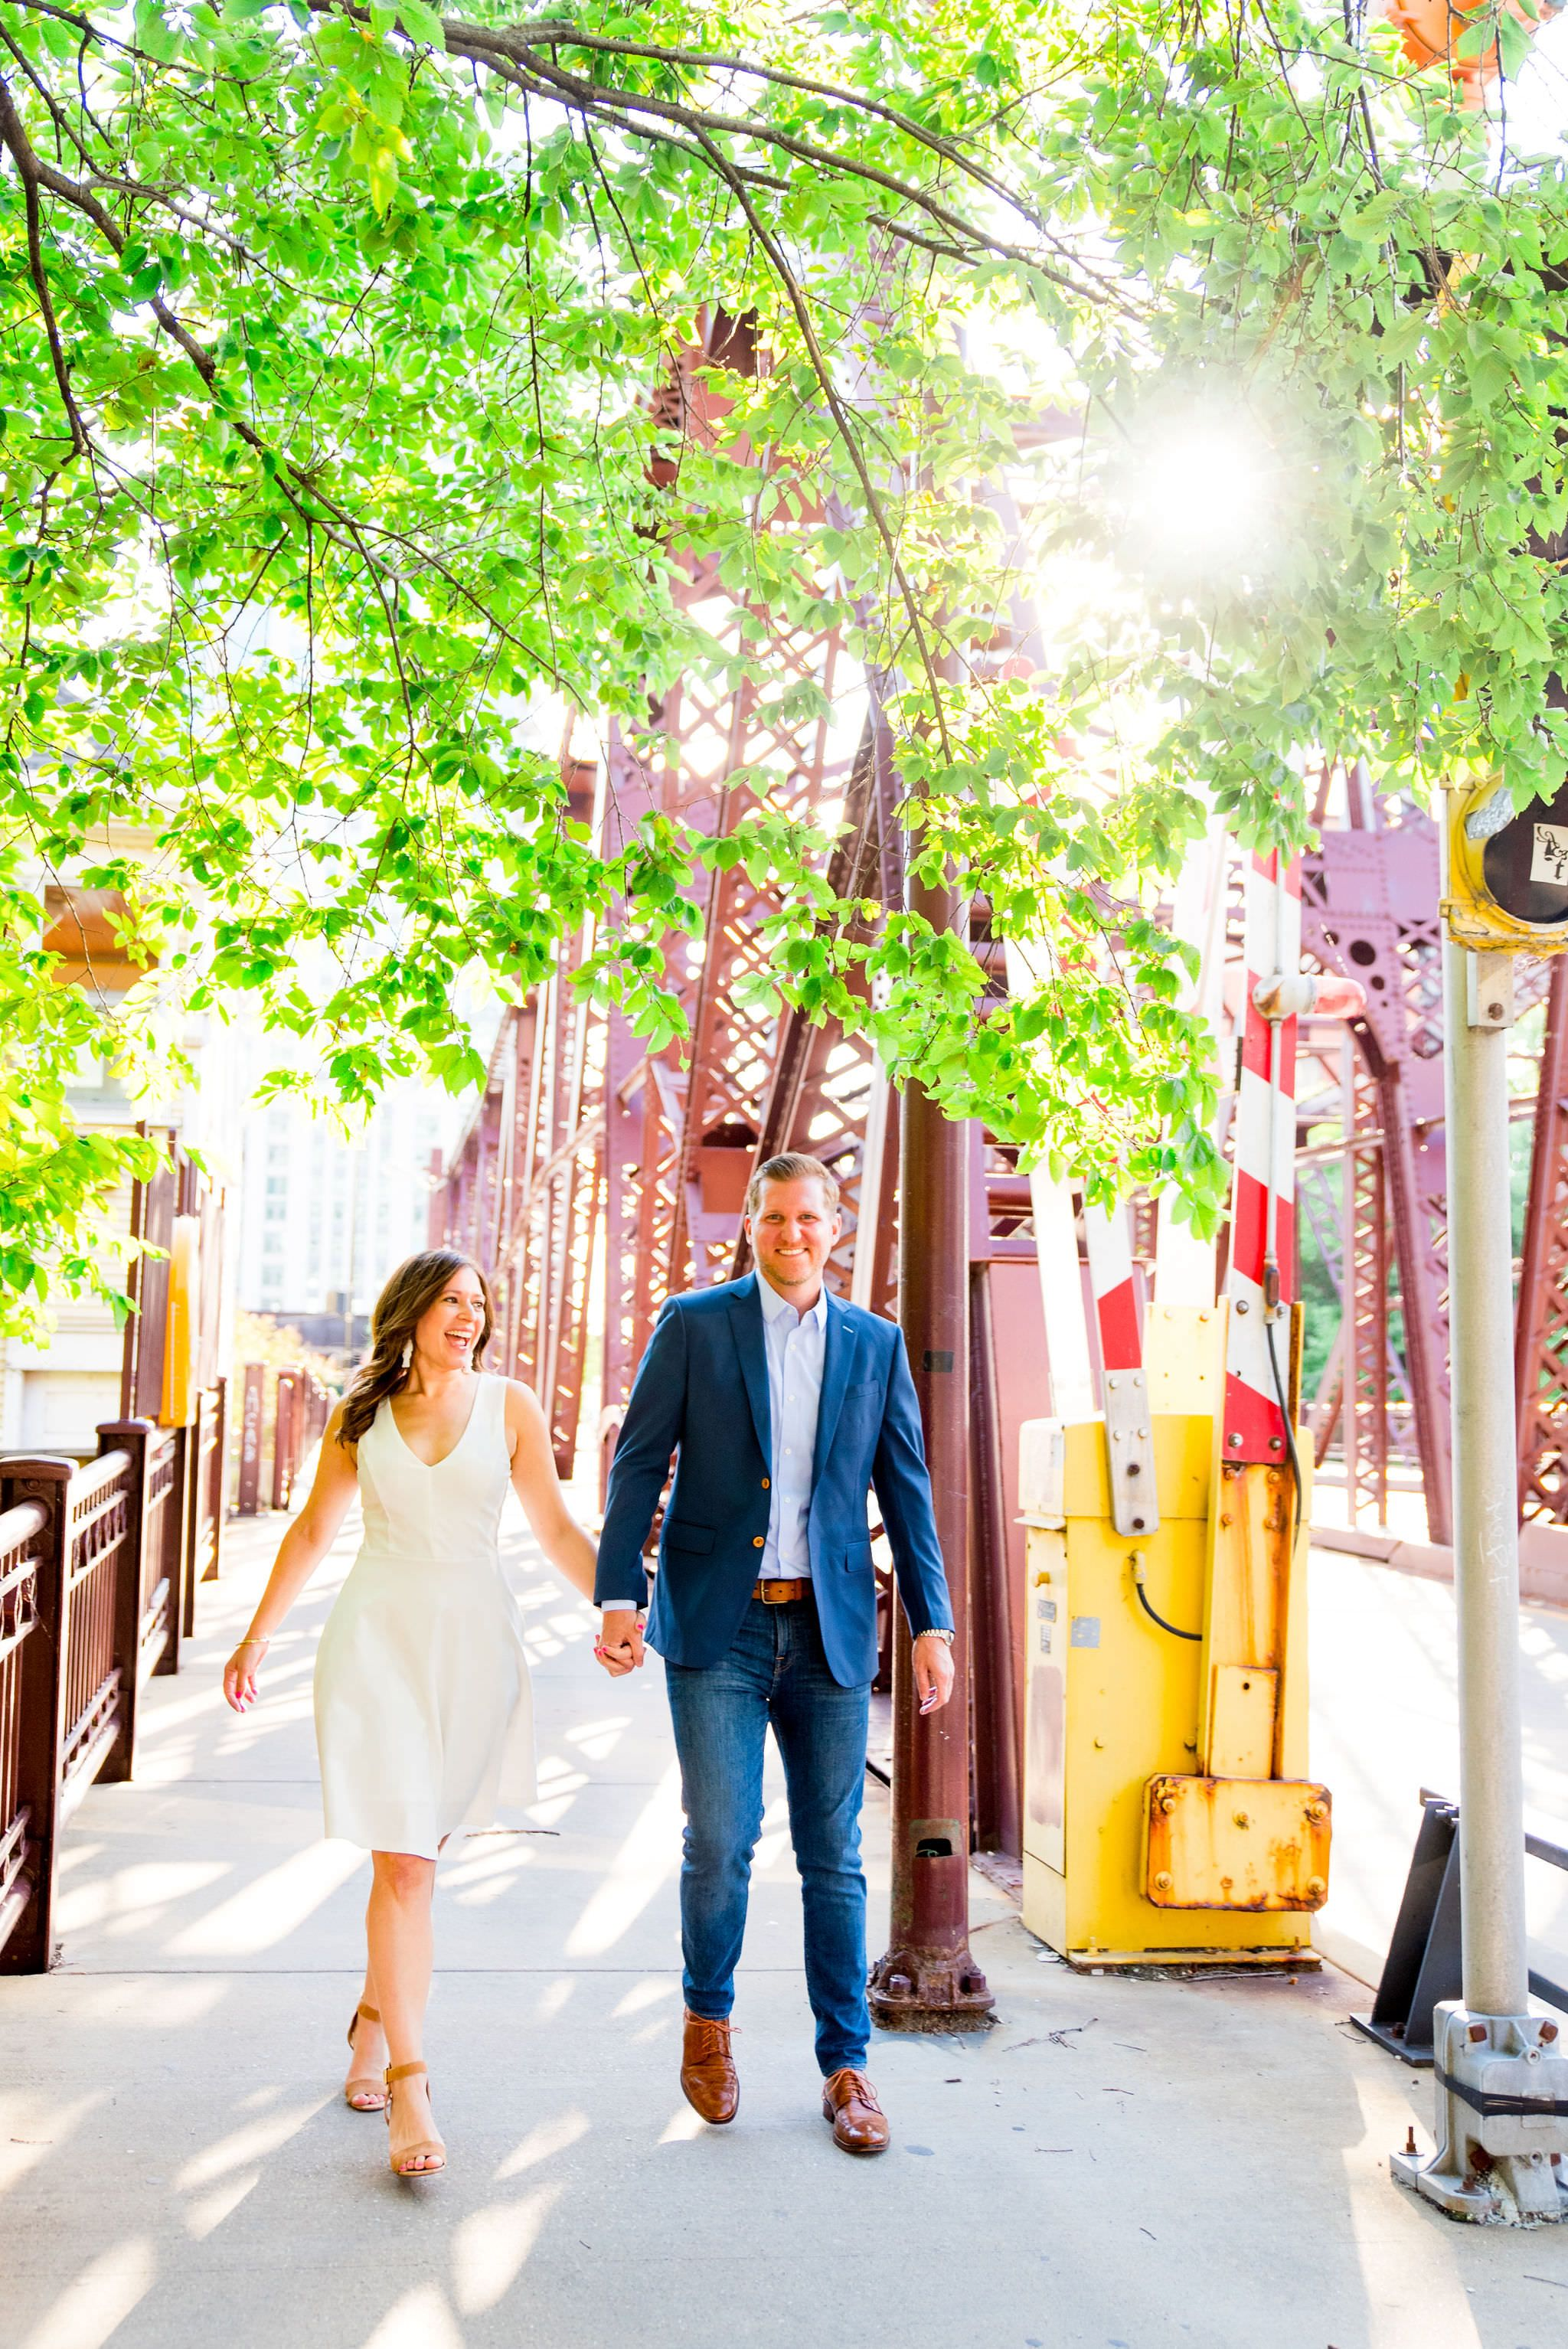 woman in white dress and man in navy suit walking by Kinzie St Bridge in Chicago for sunset engagement pictures